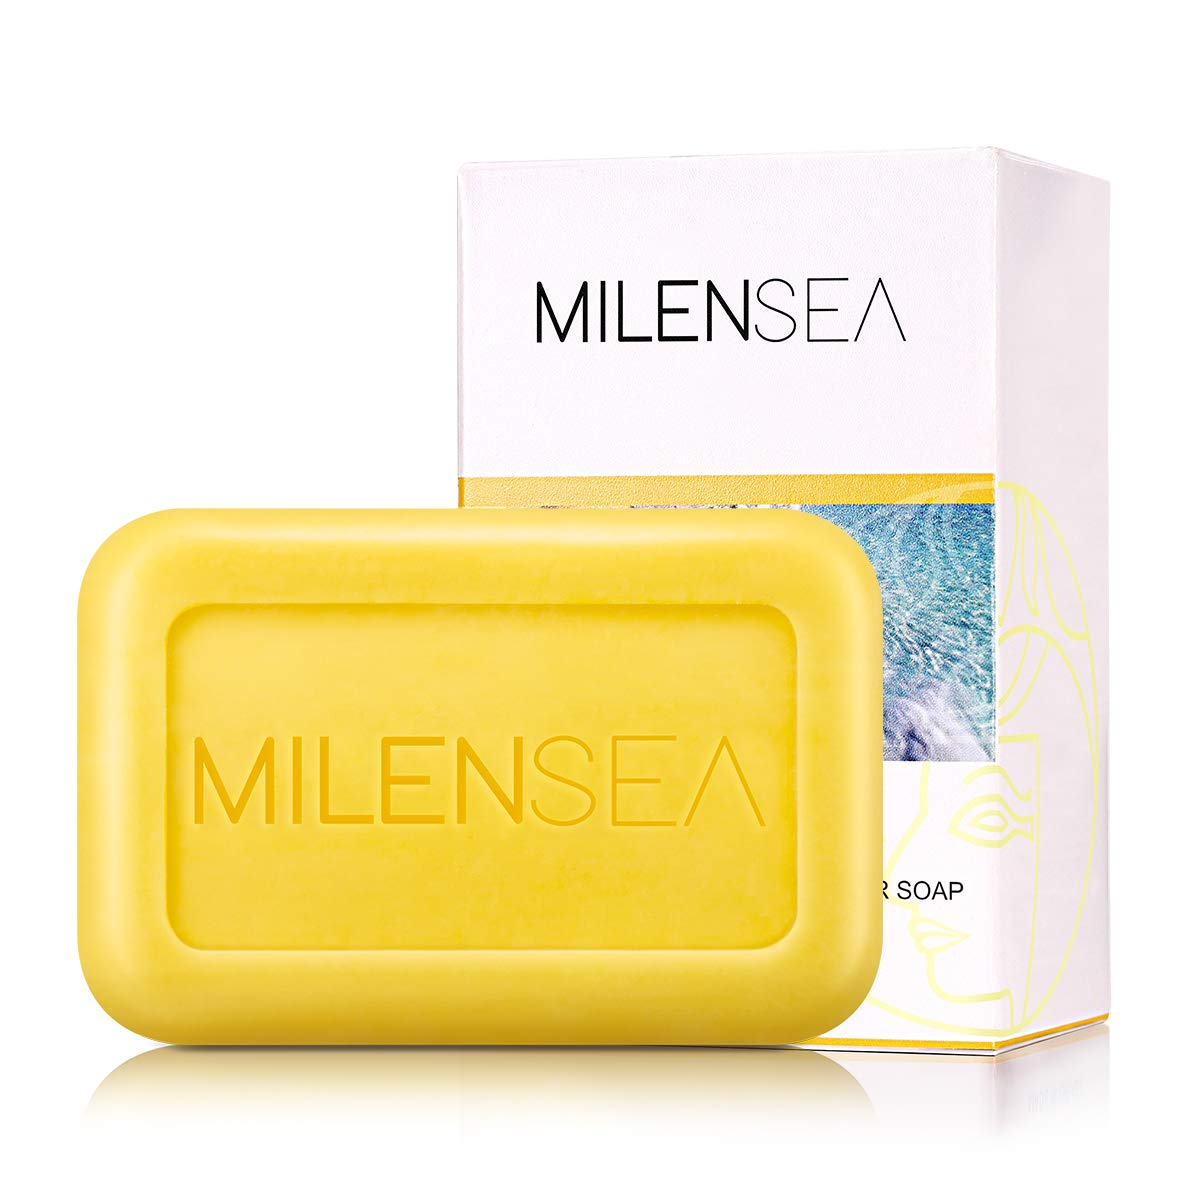 MILENSEA CleoQueen Dead Sea Sulfur Soap, Natural Acne Treatment Face Bar Soap for Acne, Eczema, Oily Skin, Psoriasis, Antimicrobial - With Custom Holder Case & Foaming Pouch - 4.4 OZ (125g) PALOMA DEAD SEA LTD.